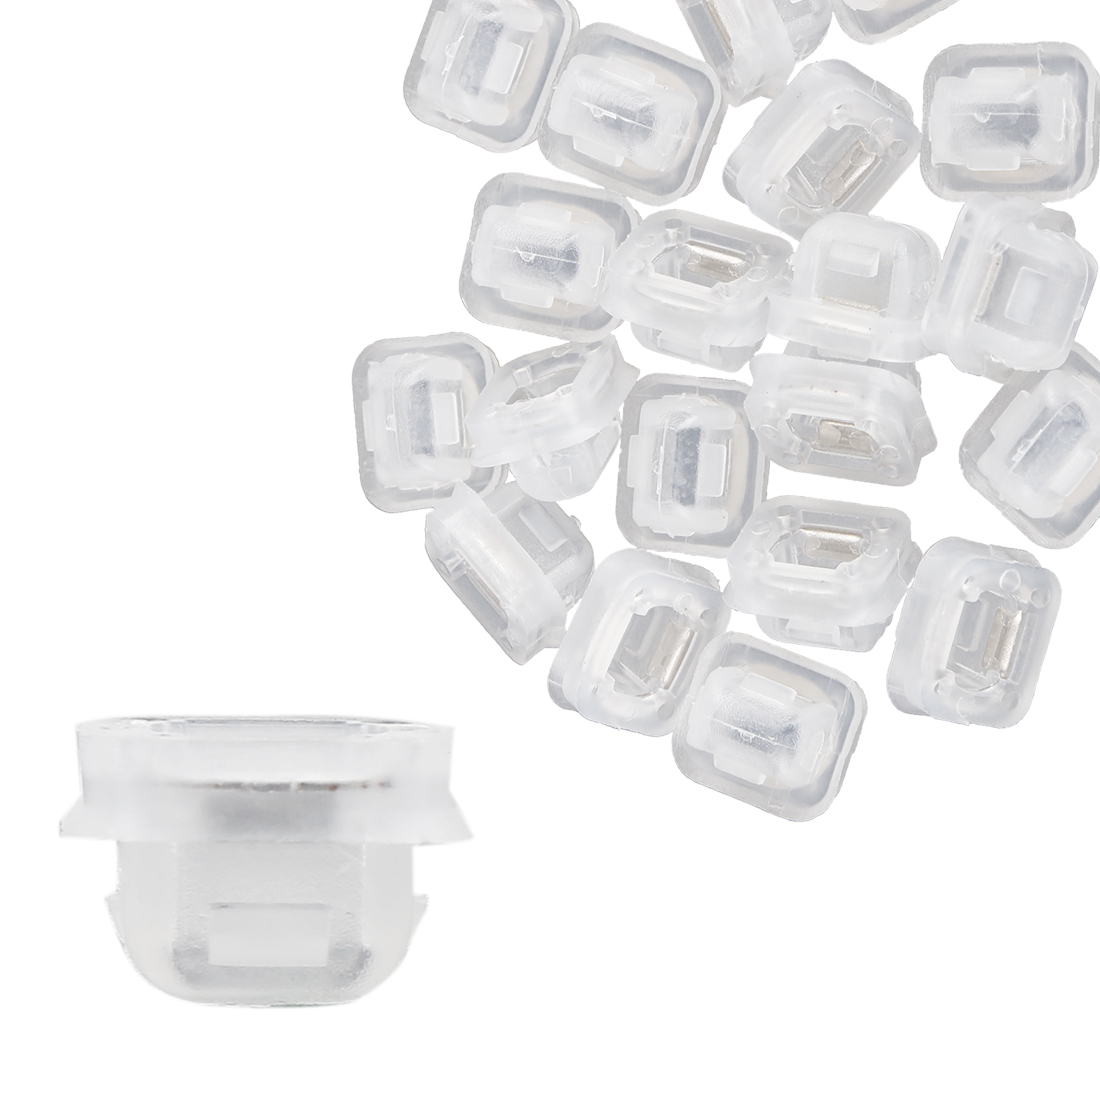 20pcs Plastic White Retainer Clips for BMW E46 E90 E91 E92 320i 323i 07149158194